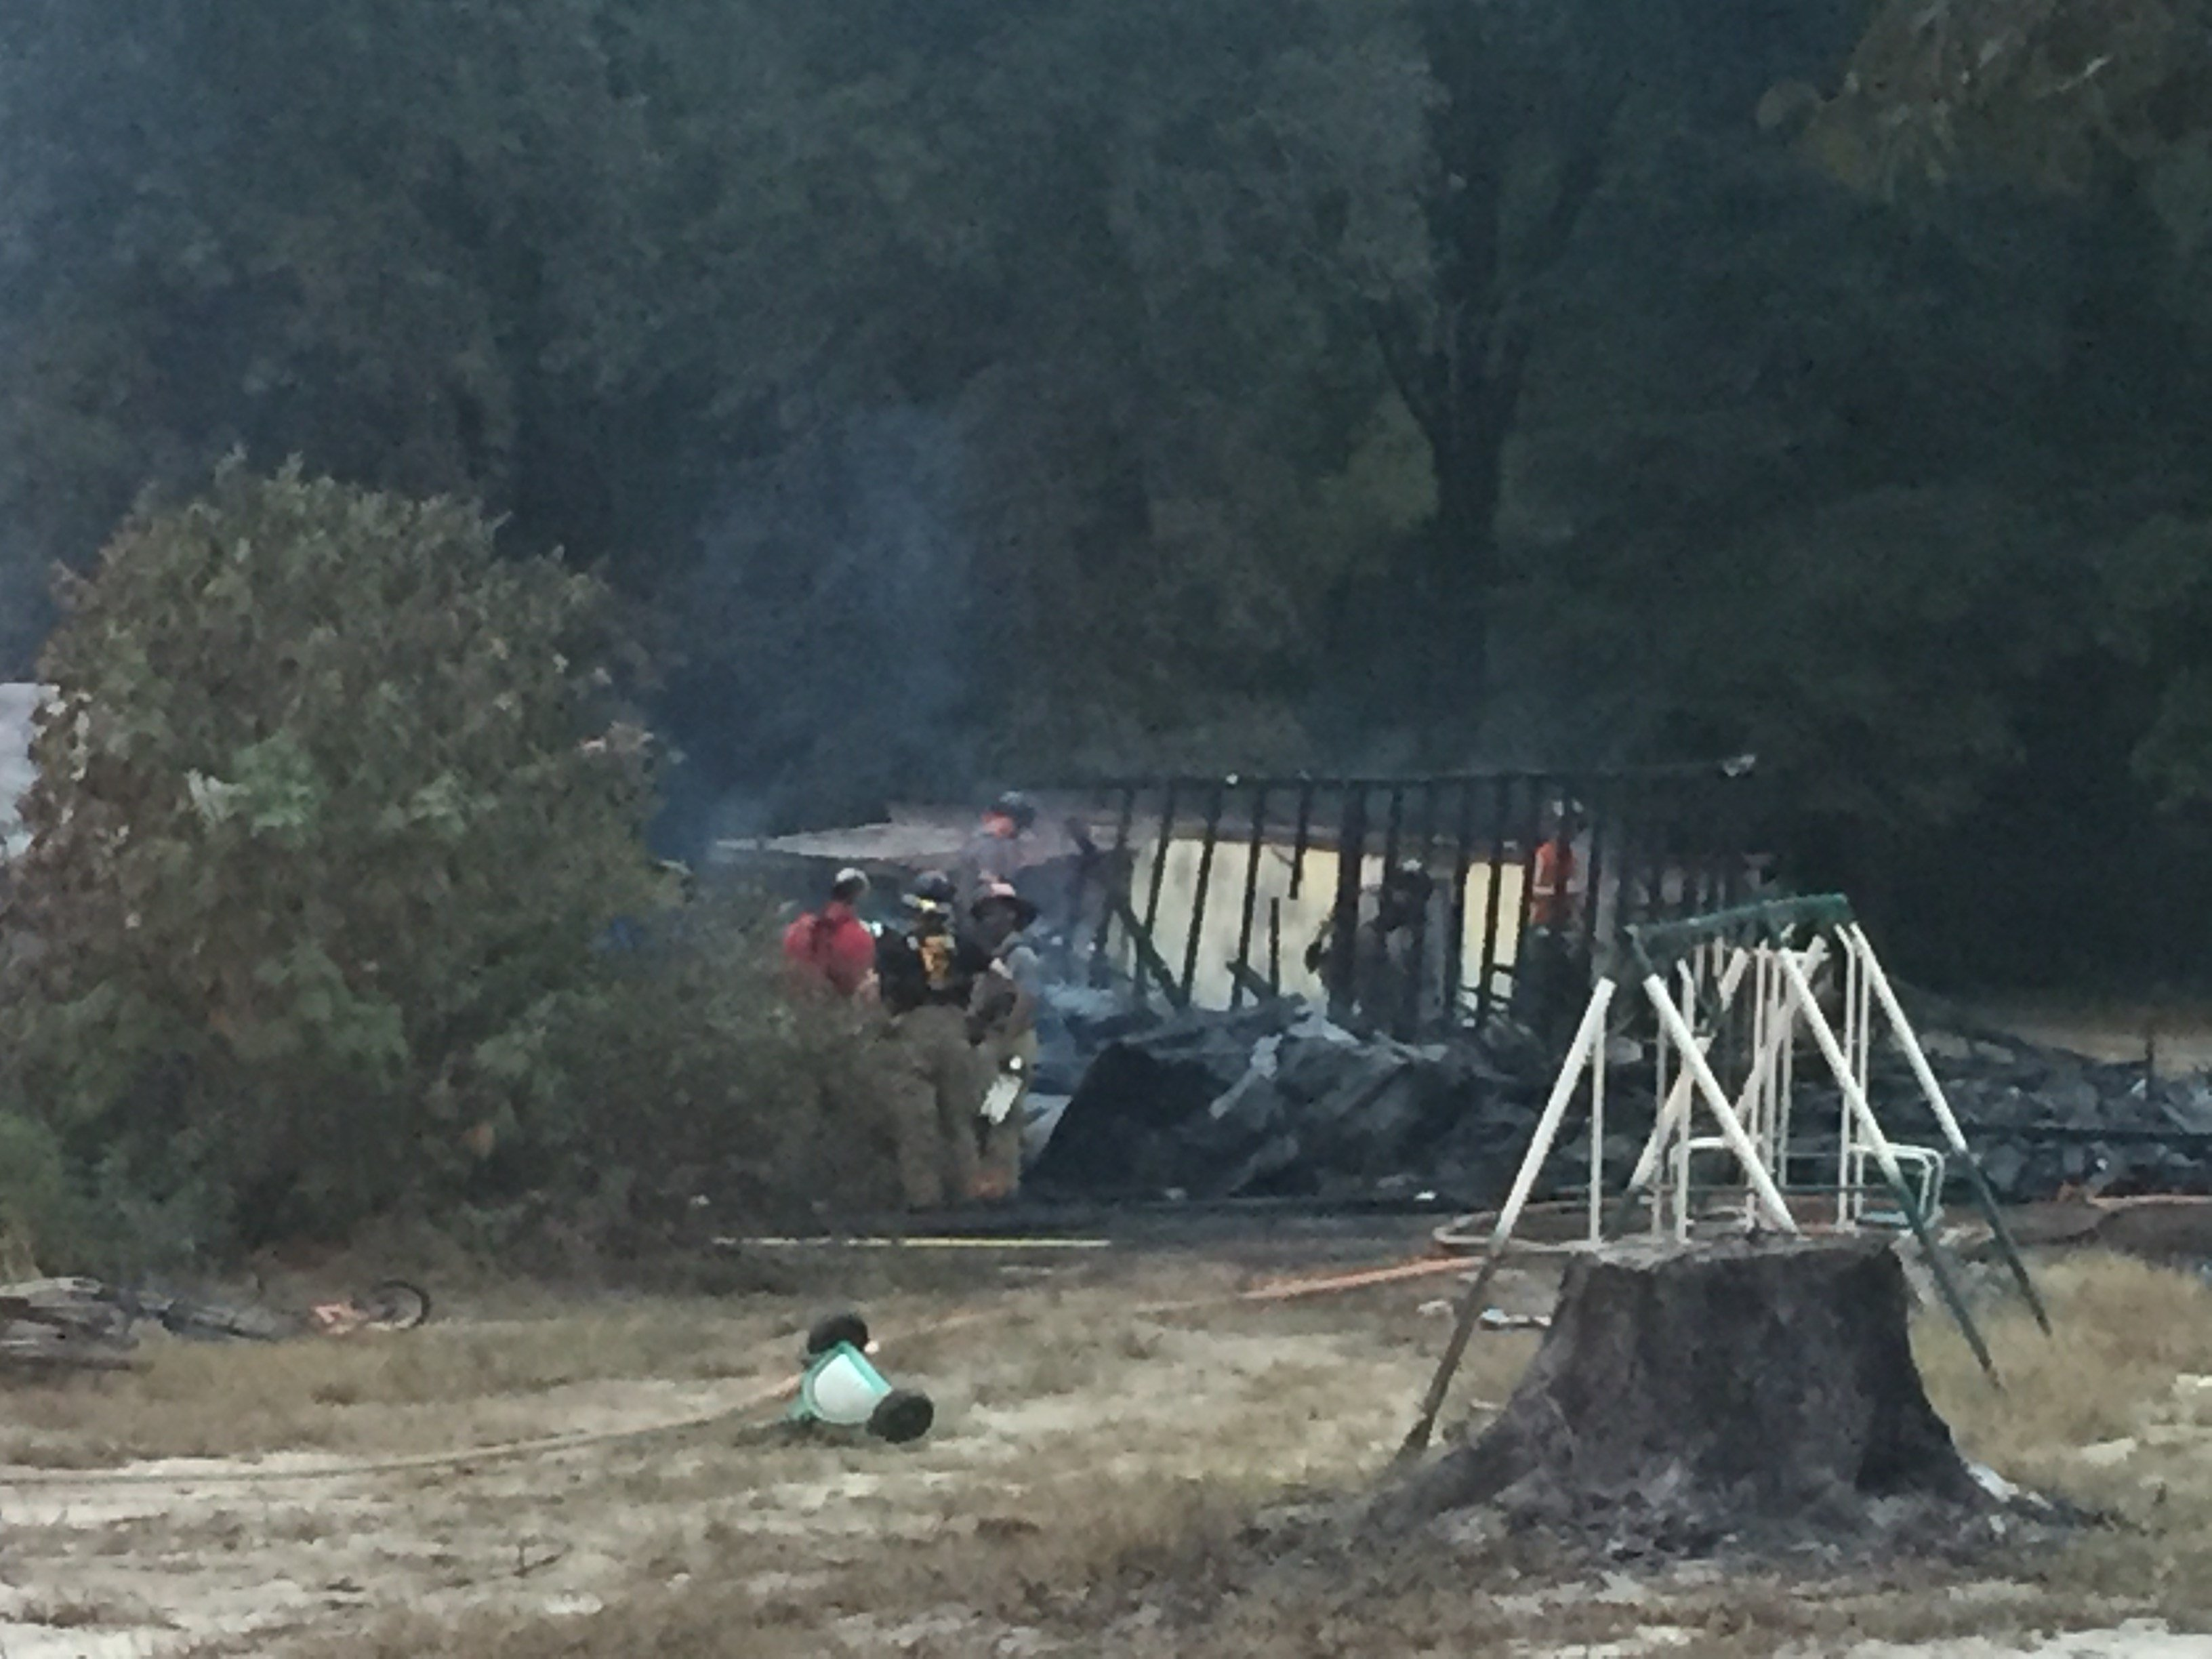 Fire at mobile home in Jackson 10/6/17 (WFXG)